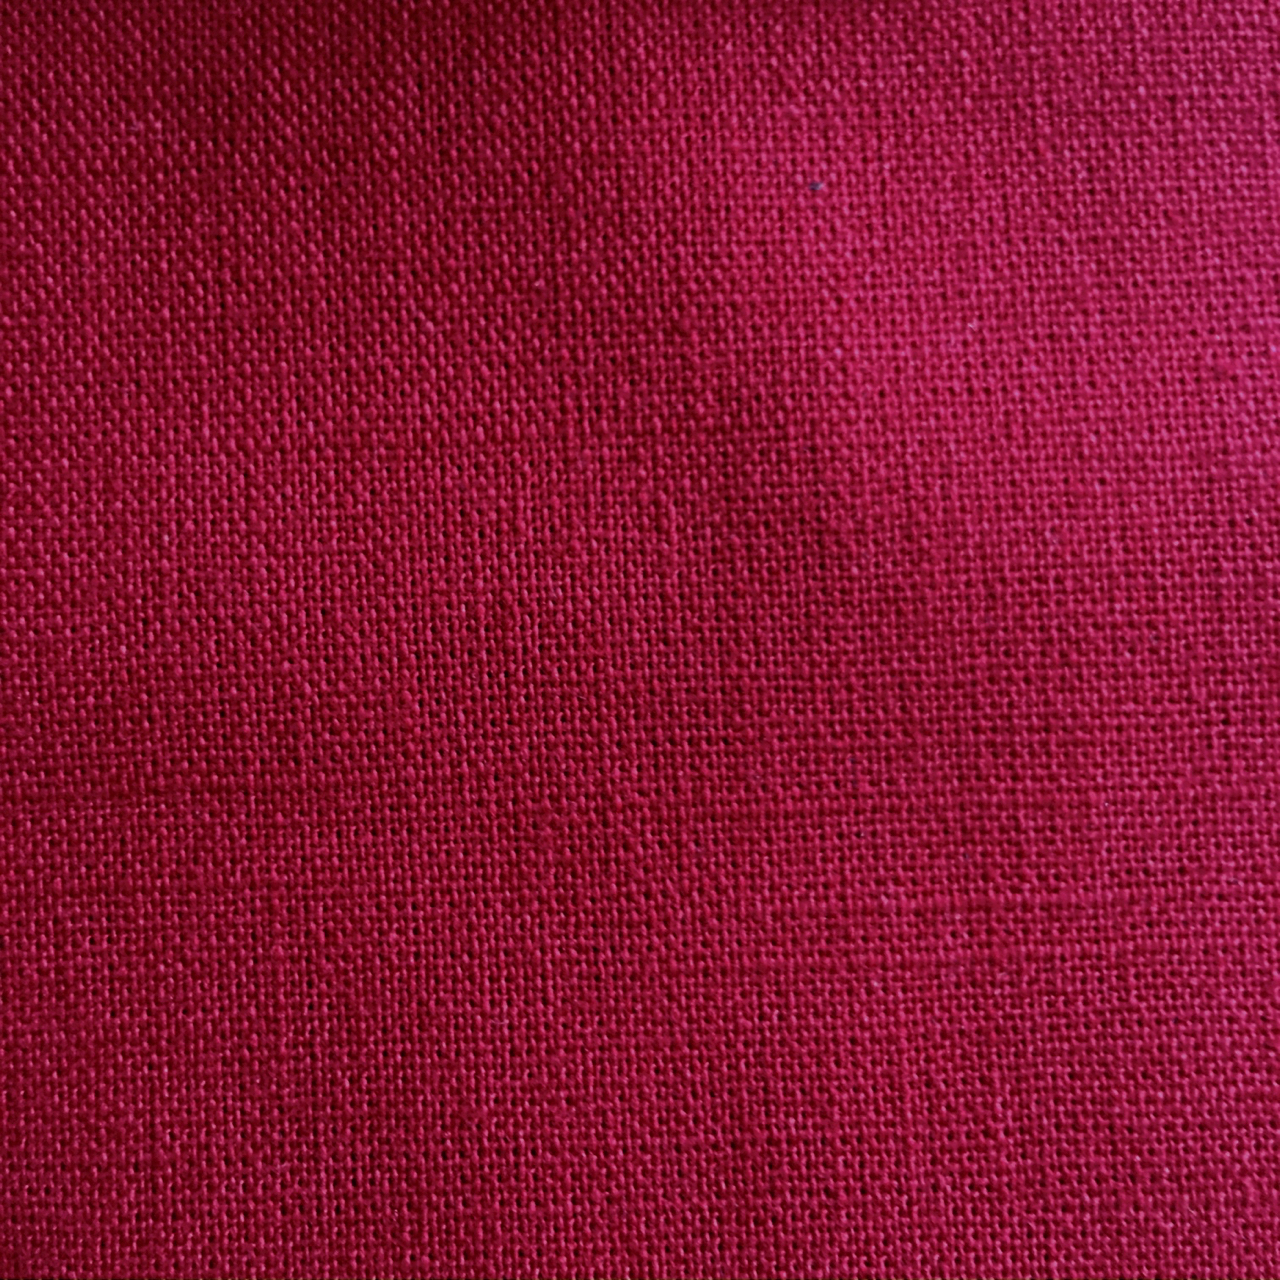 red cotton linen fabric for sashiko embroidery